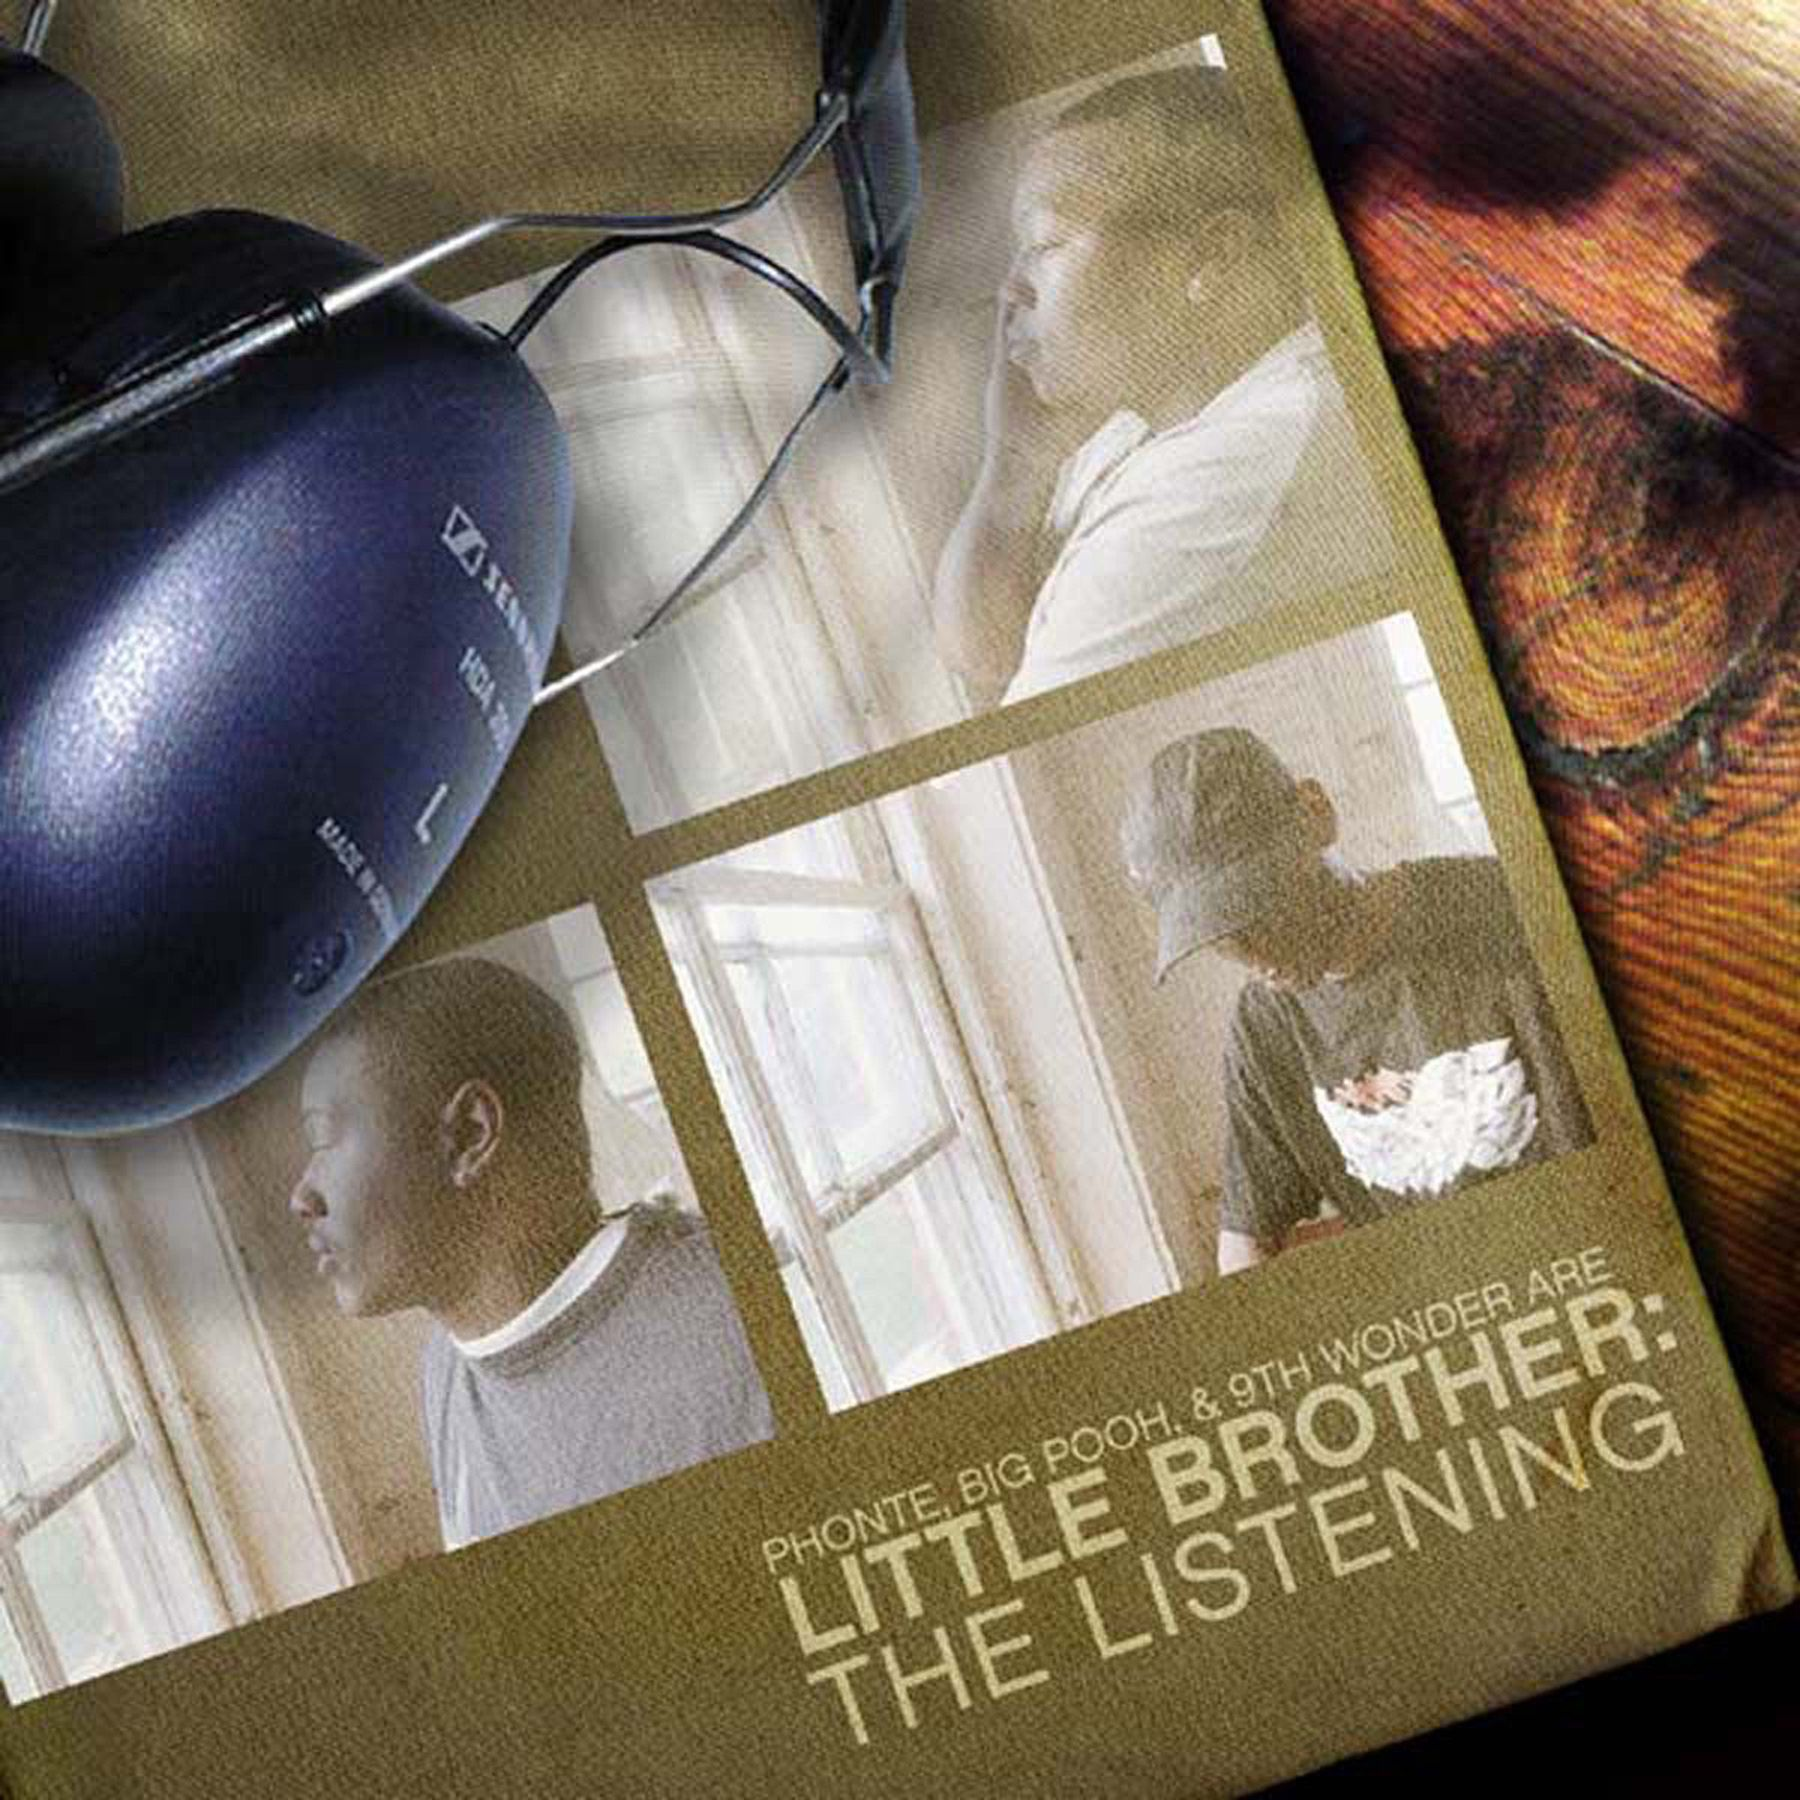 The Listening Cover